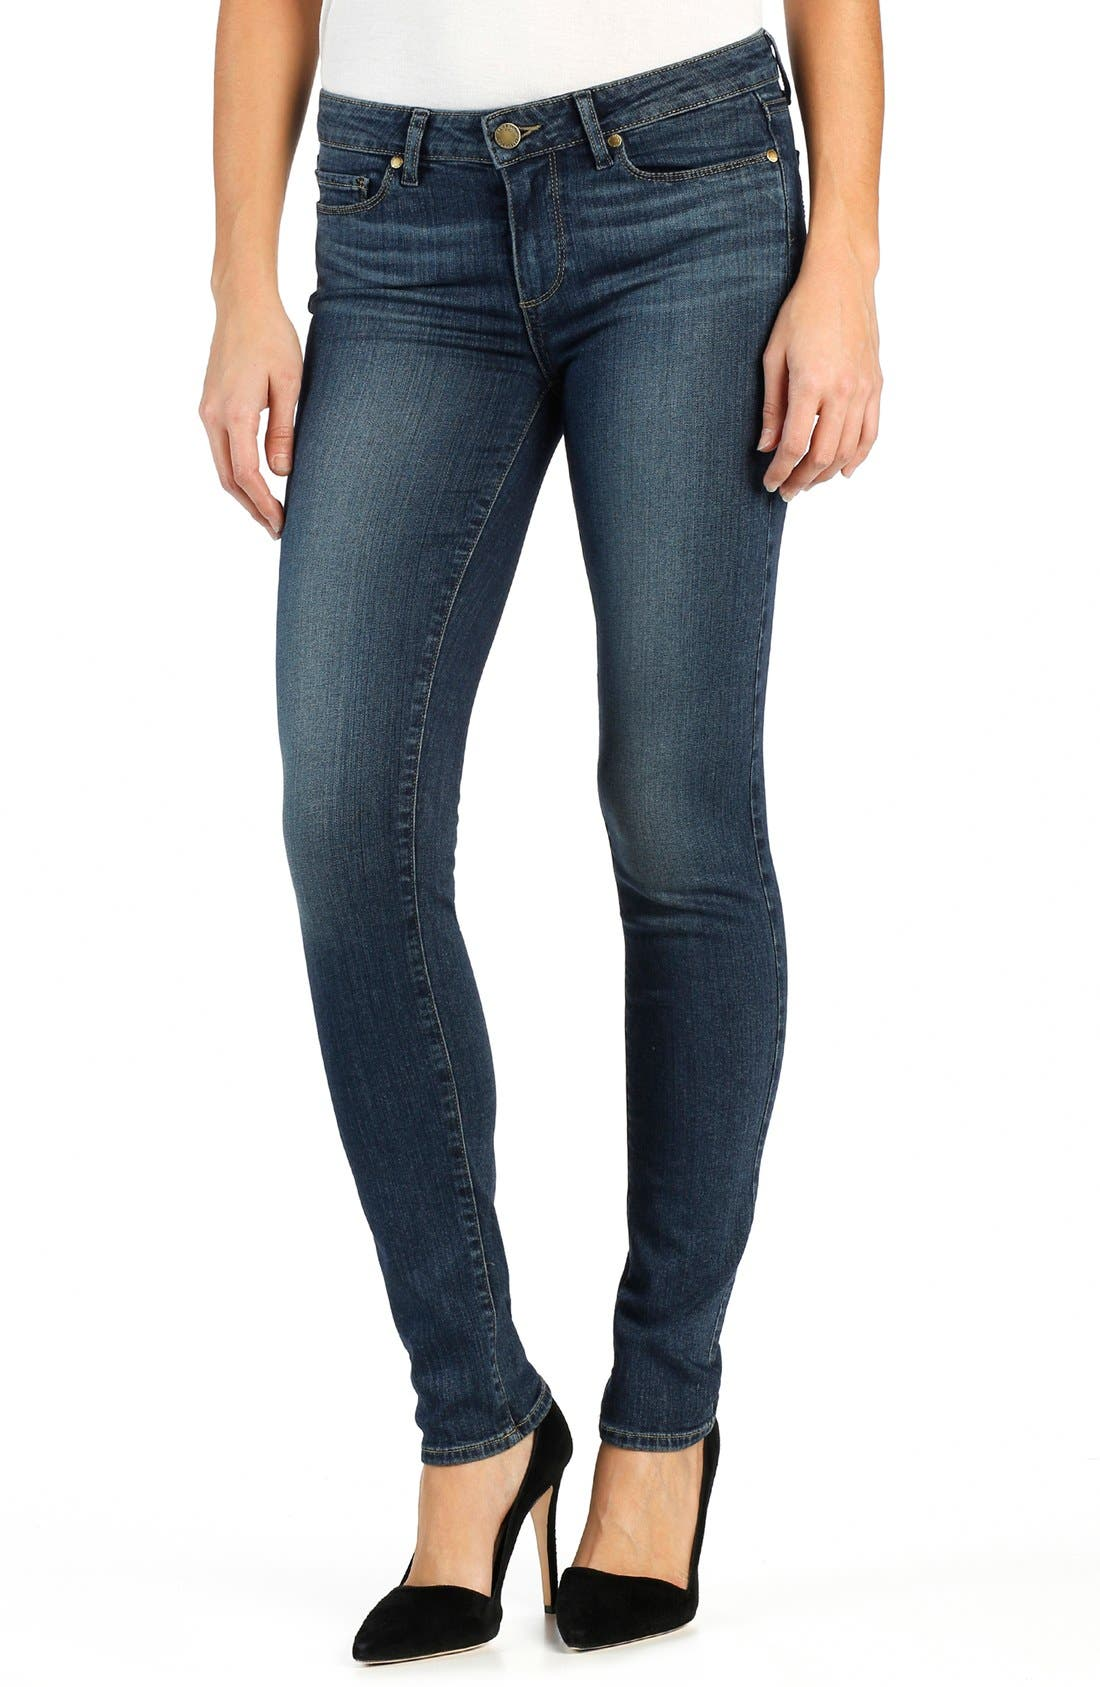 Alternate Image 1 Selected - PAIGE Transcend Skyline Skinny Jeans (Brentyn)